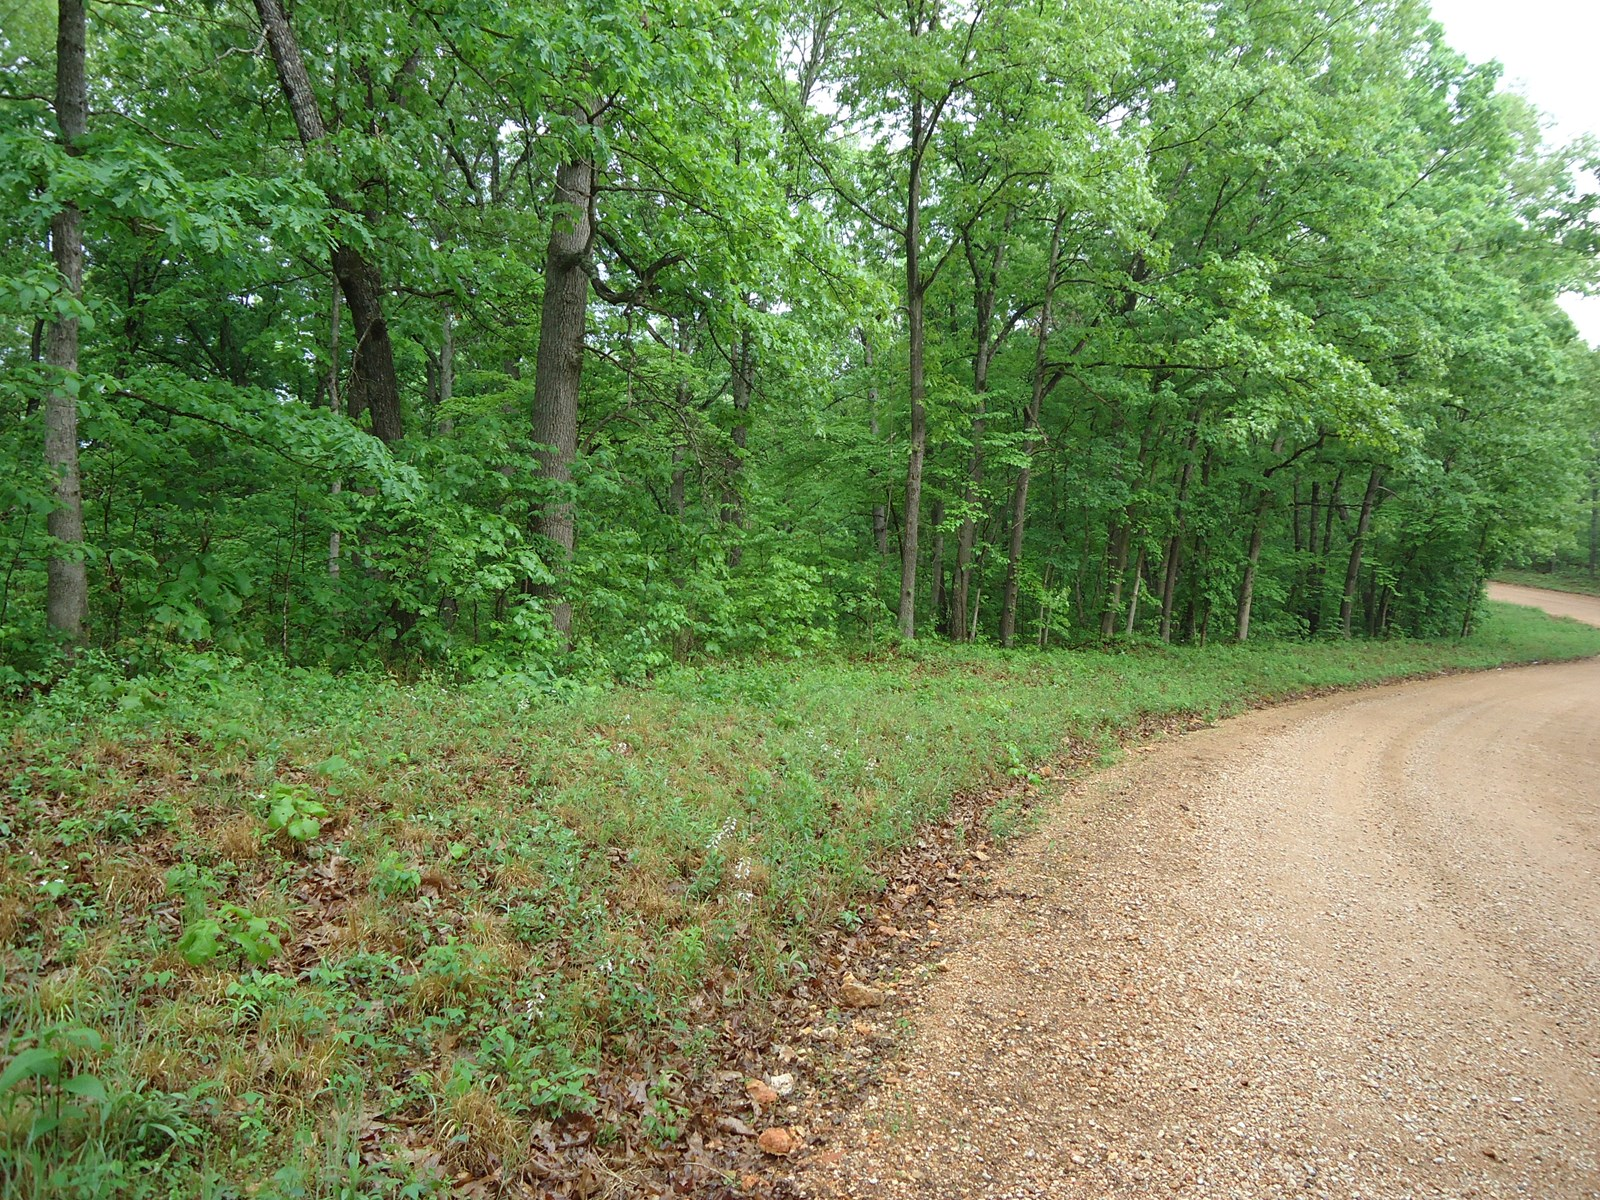 5 +/- Acres of Vacant Land for Sale Near Lake of the Ozarks